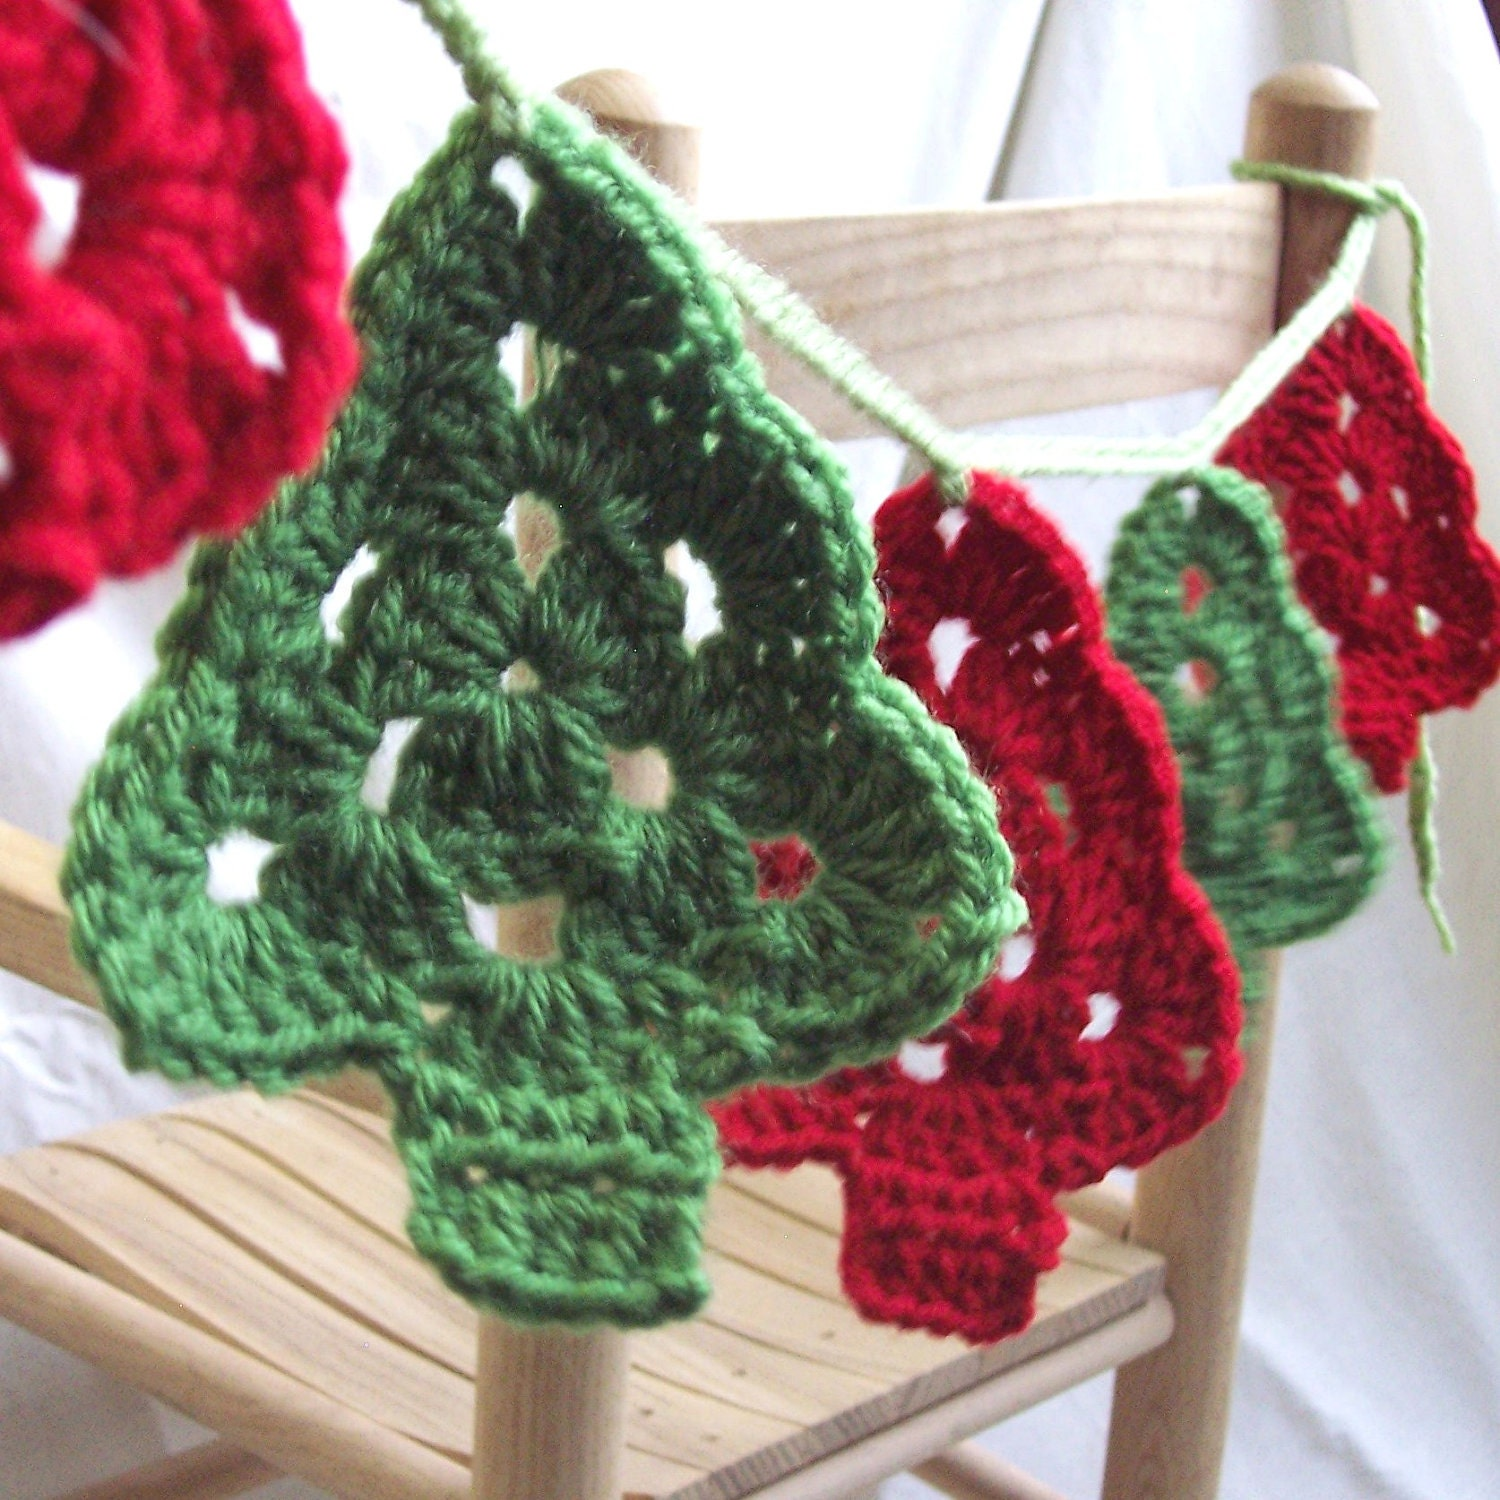 Crochet Patterns Xmas : Christmas Trees Crochet Garland Granny Tree by ThePrairieCottage